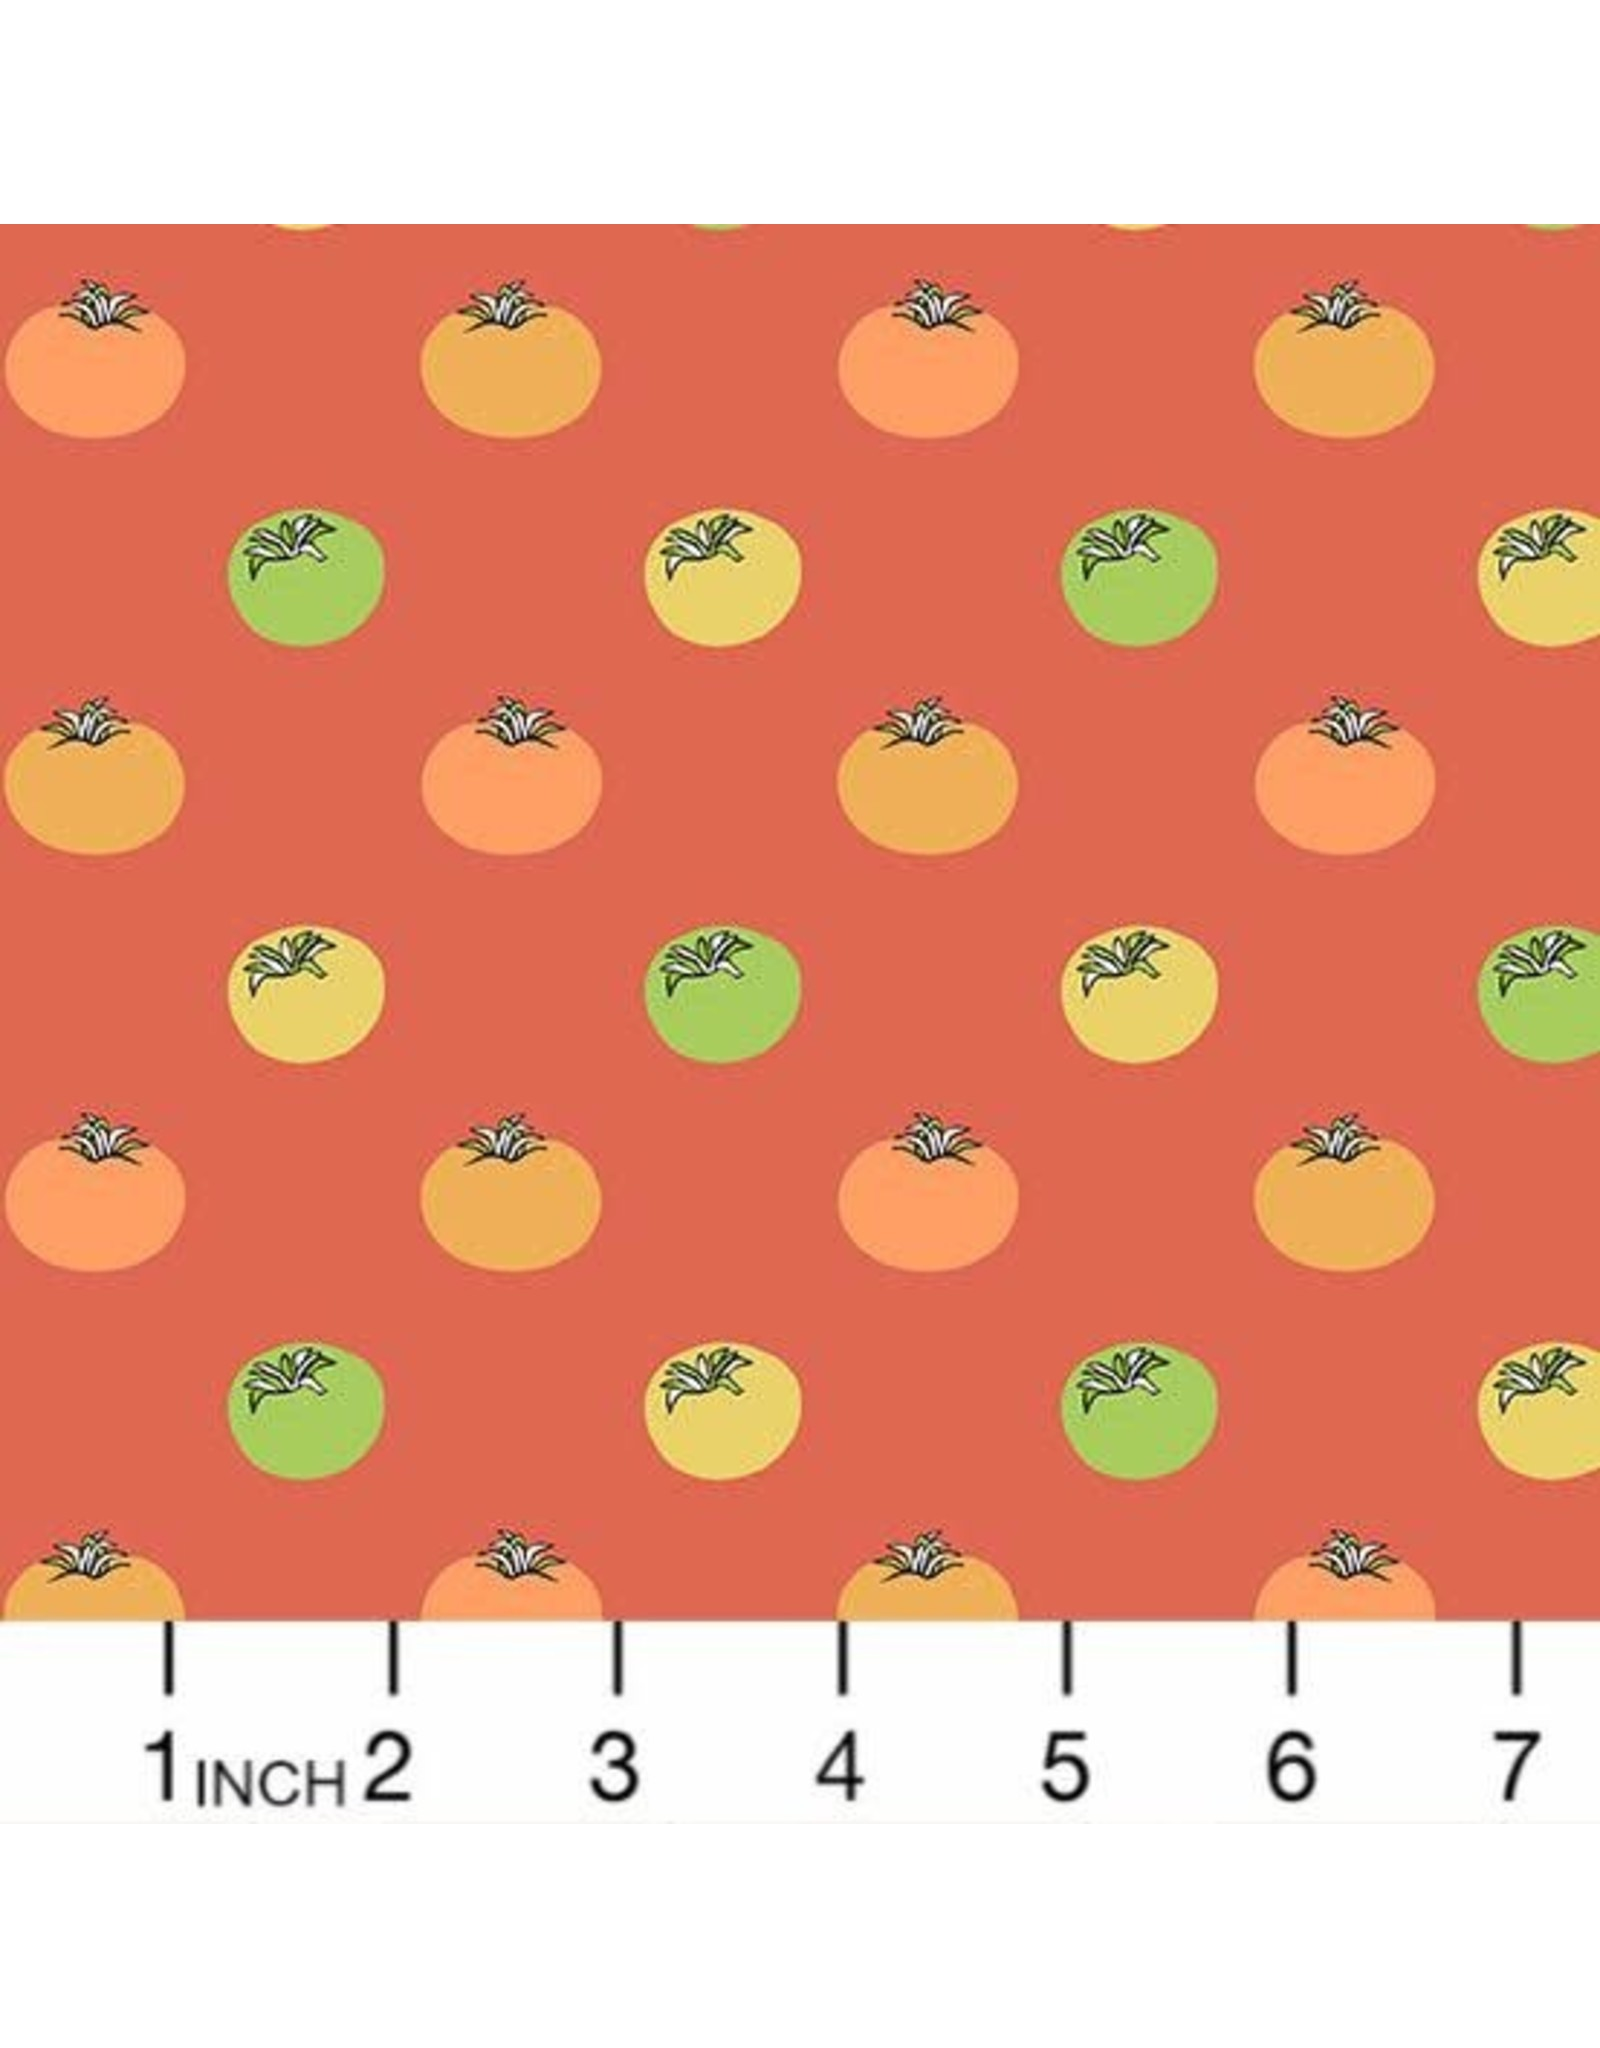 Andover Fabrics Farm to Fabric, Heirloom Tomatoes in Red, Fabric Half-Yards 9391-O